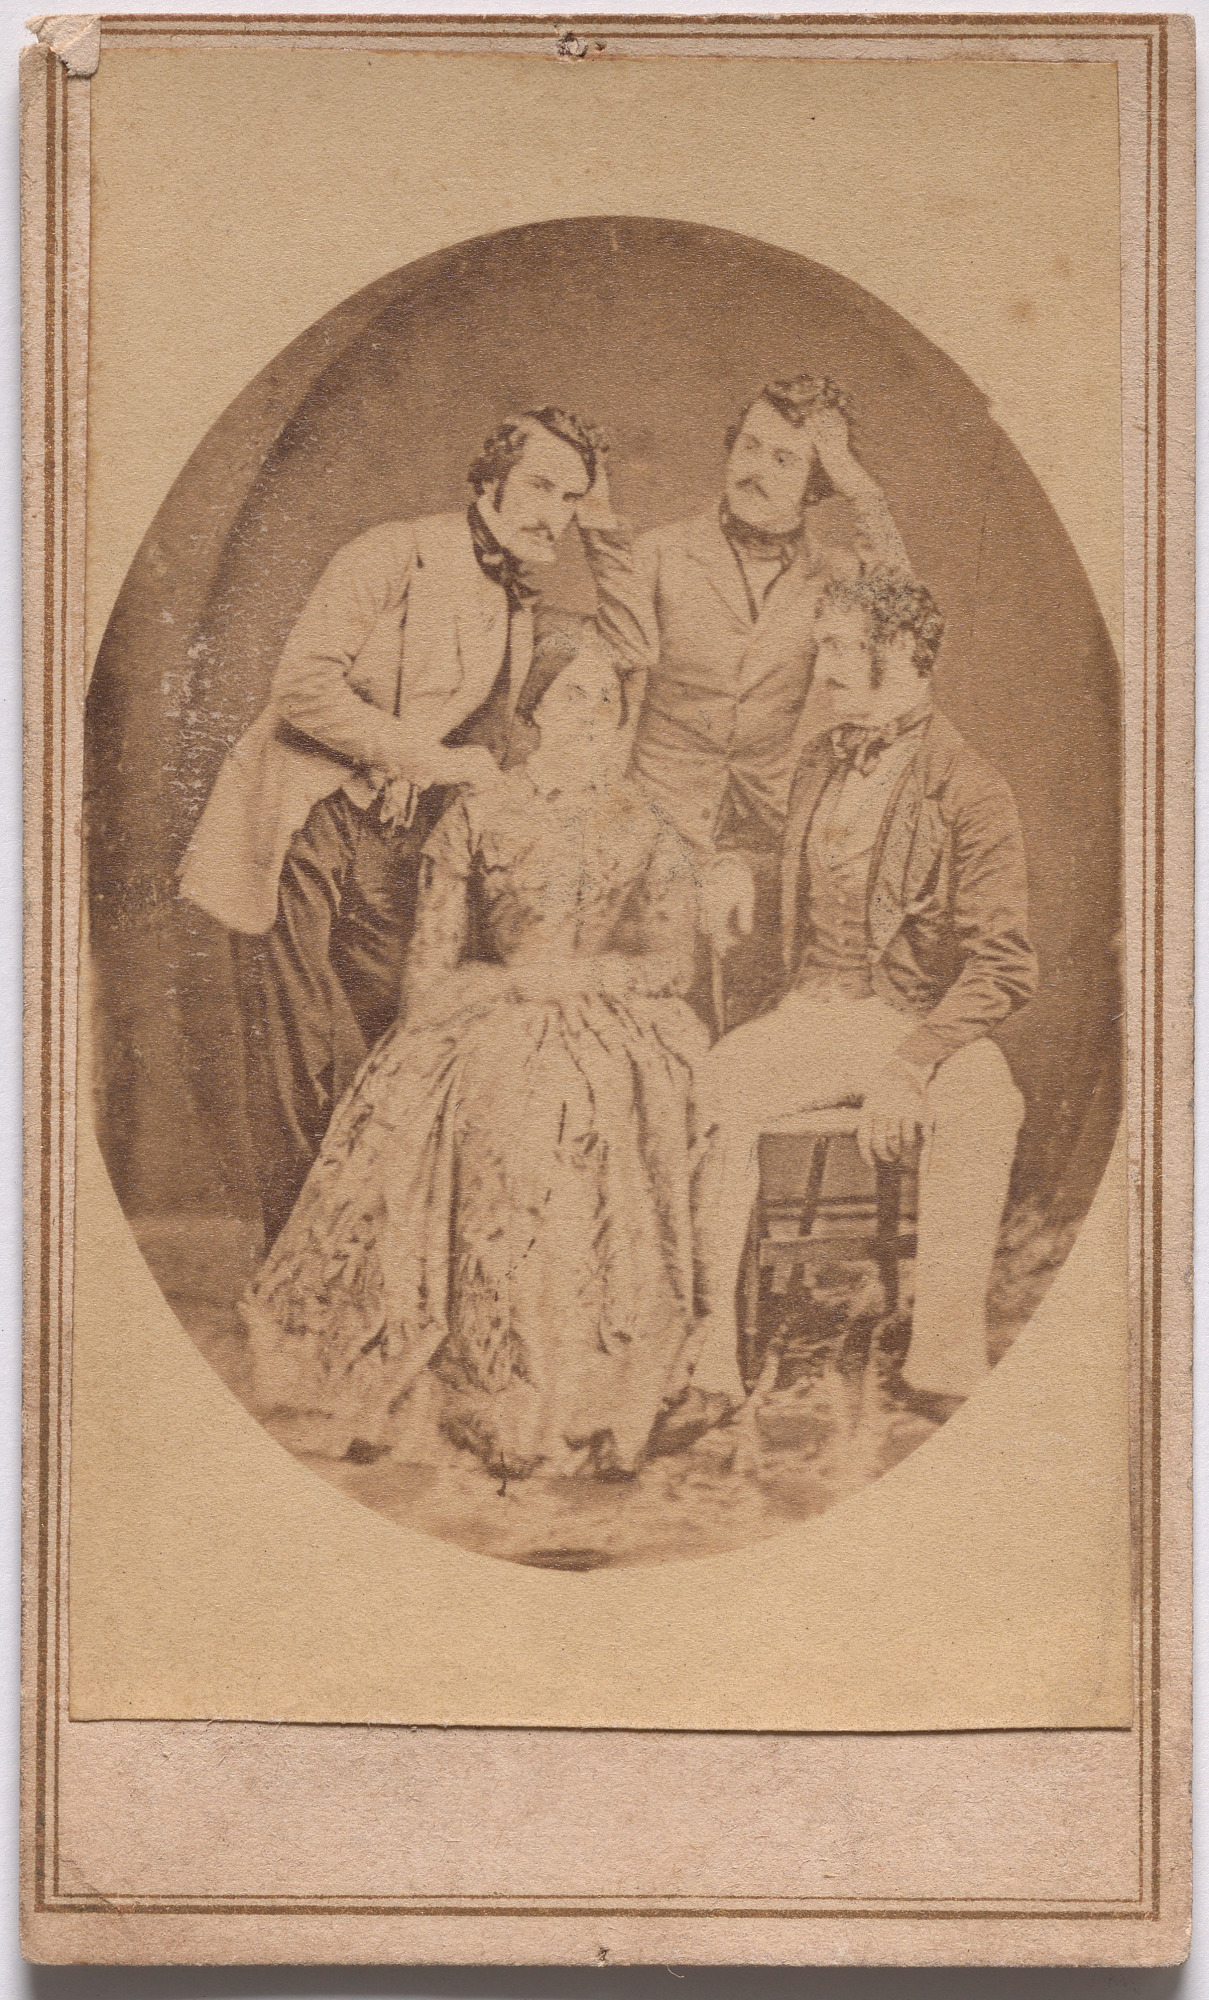 Charles and Henry Meade, Susan and Lester Wallack